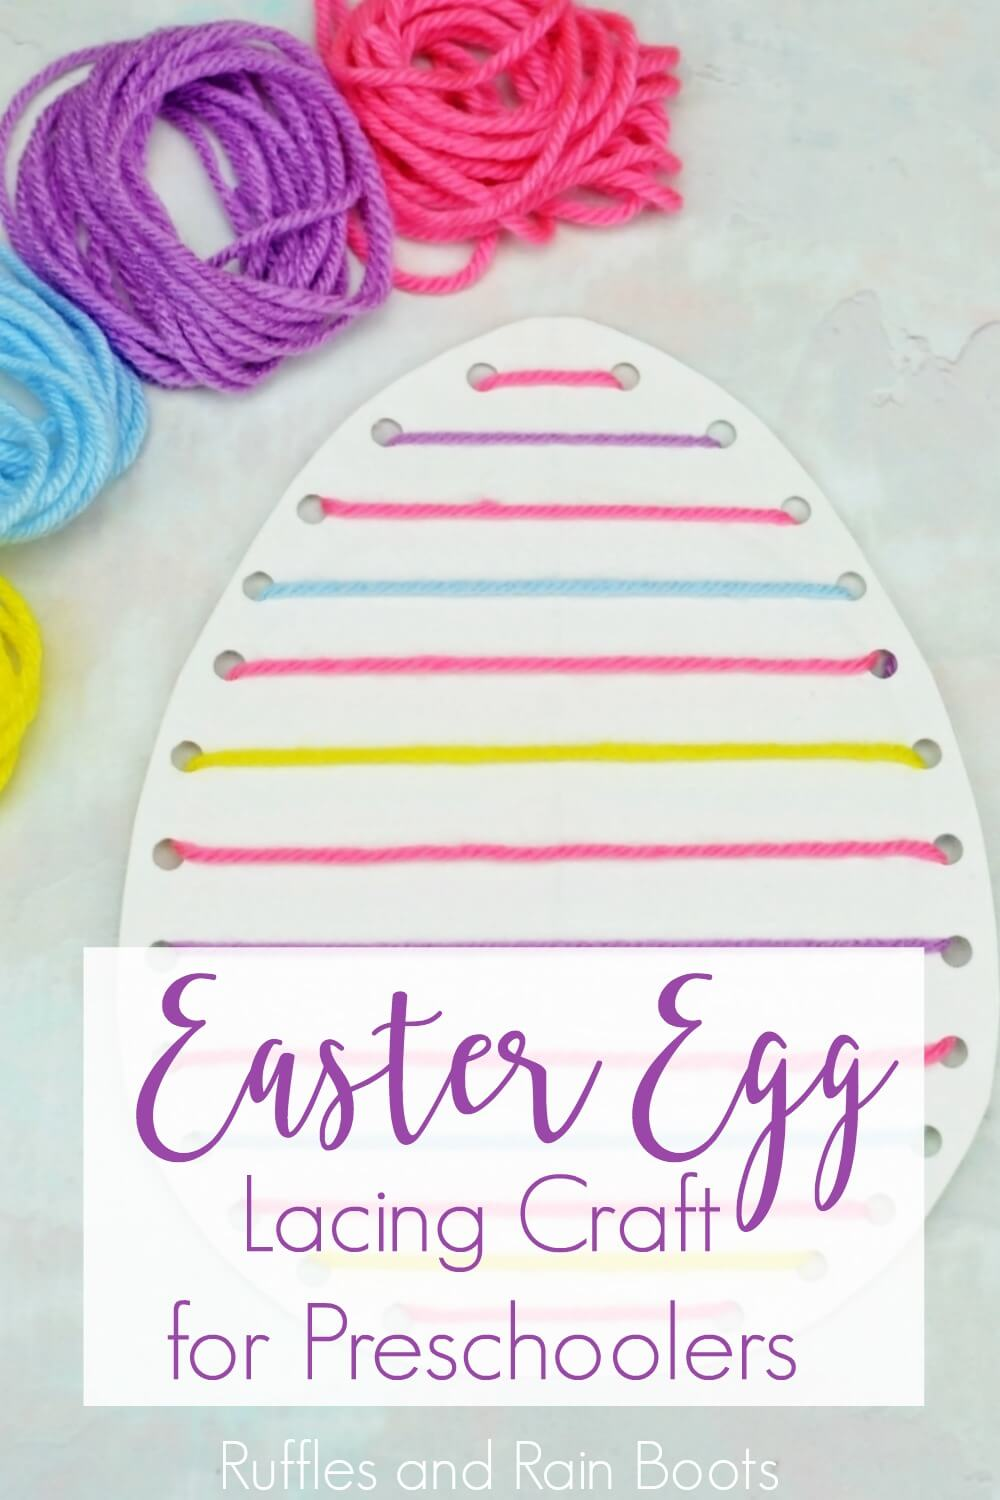 Easter egg lacing craft on white background with text Easter egg Lacing Craft for Preschoolers